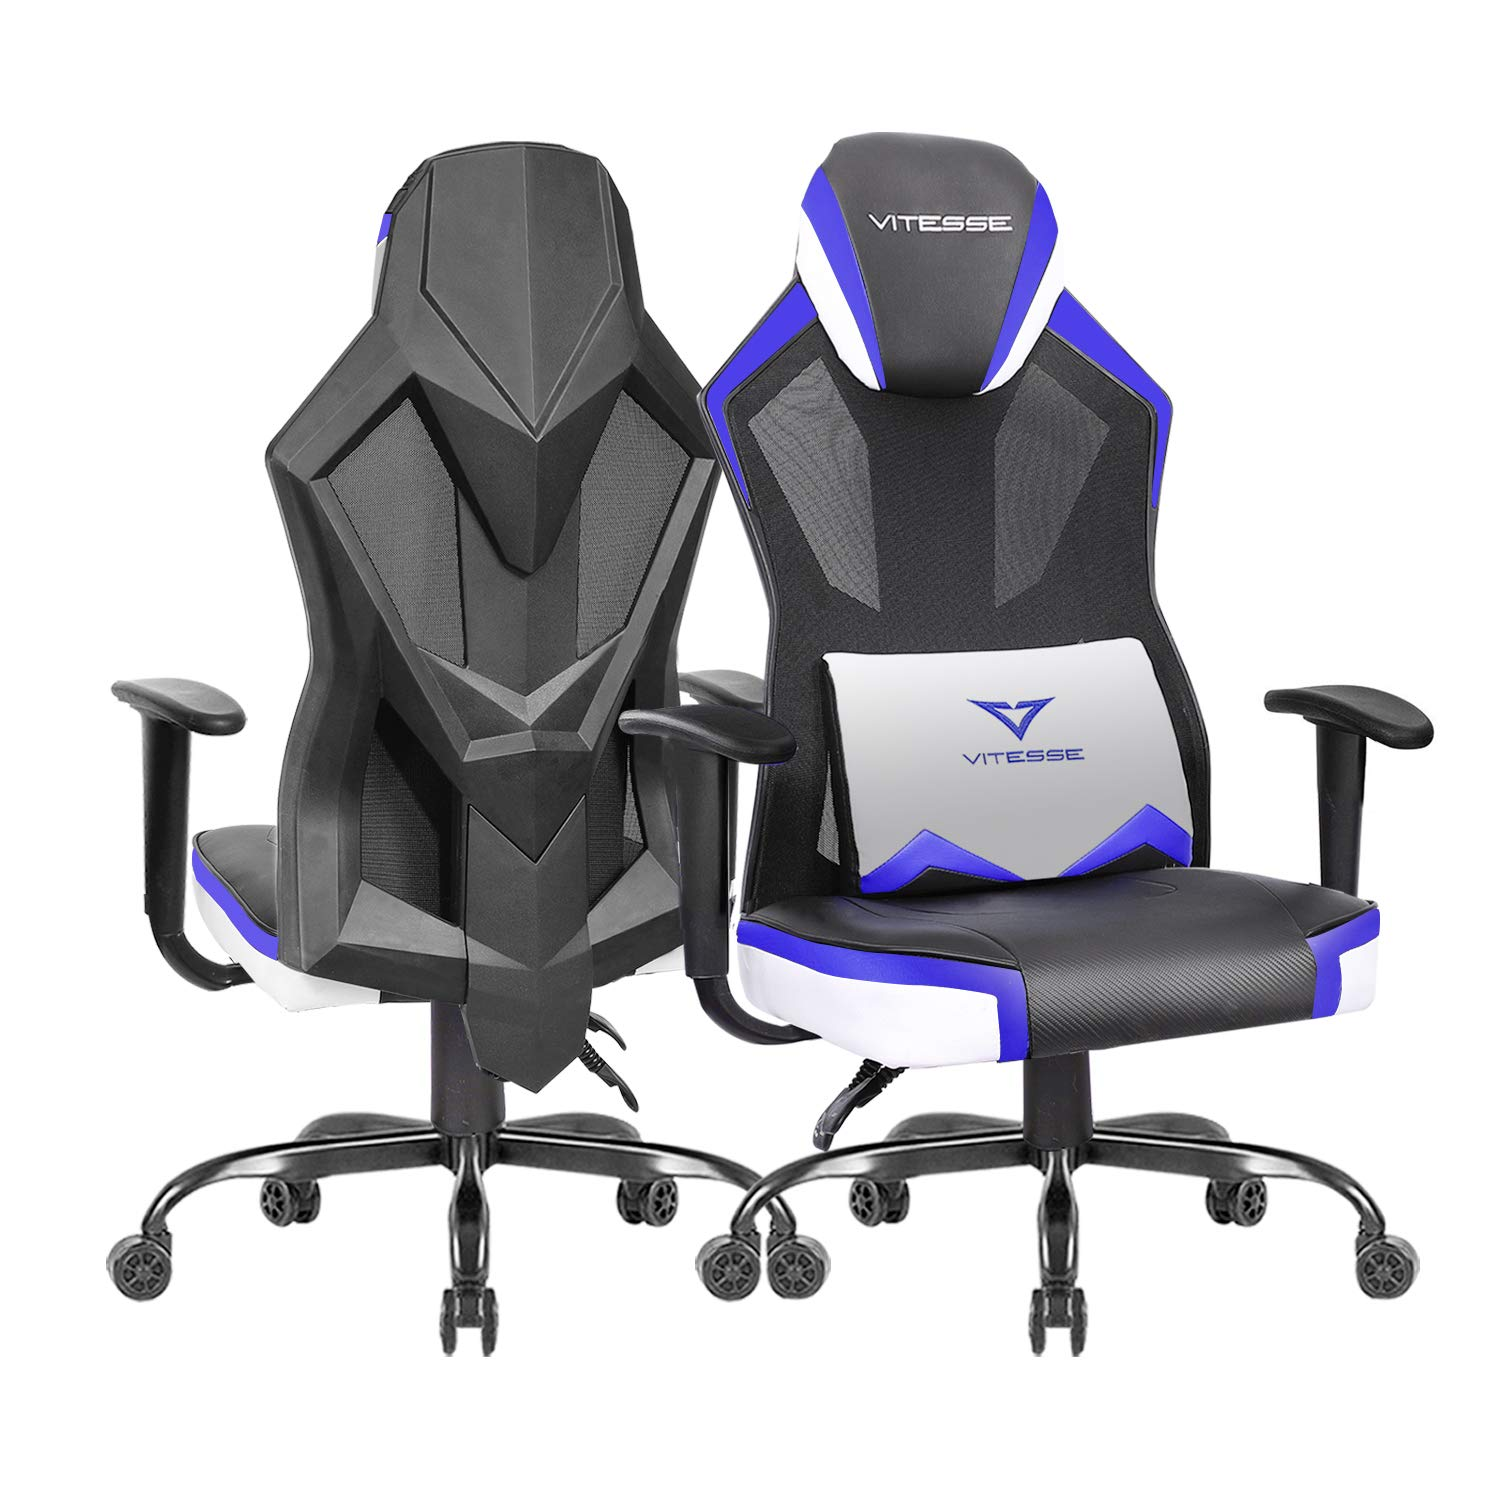 VIT Gaming Chair Racing Office Chair High Back Mesh Swivel Desk Computer Chair, Ergonomic Backrest Video Gaming Chair with Armrest and Lumbar Support Blue